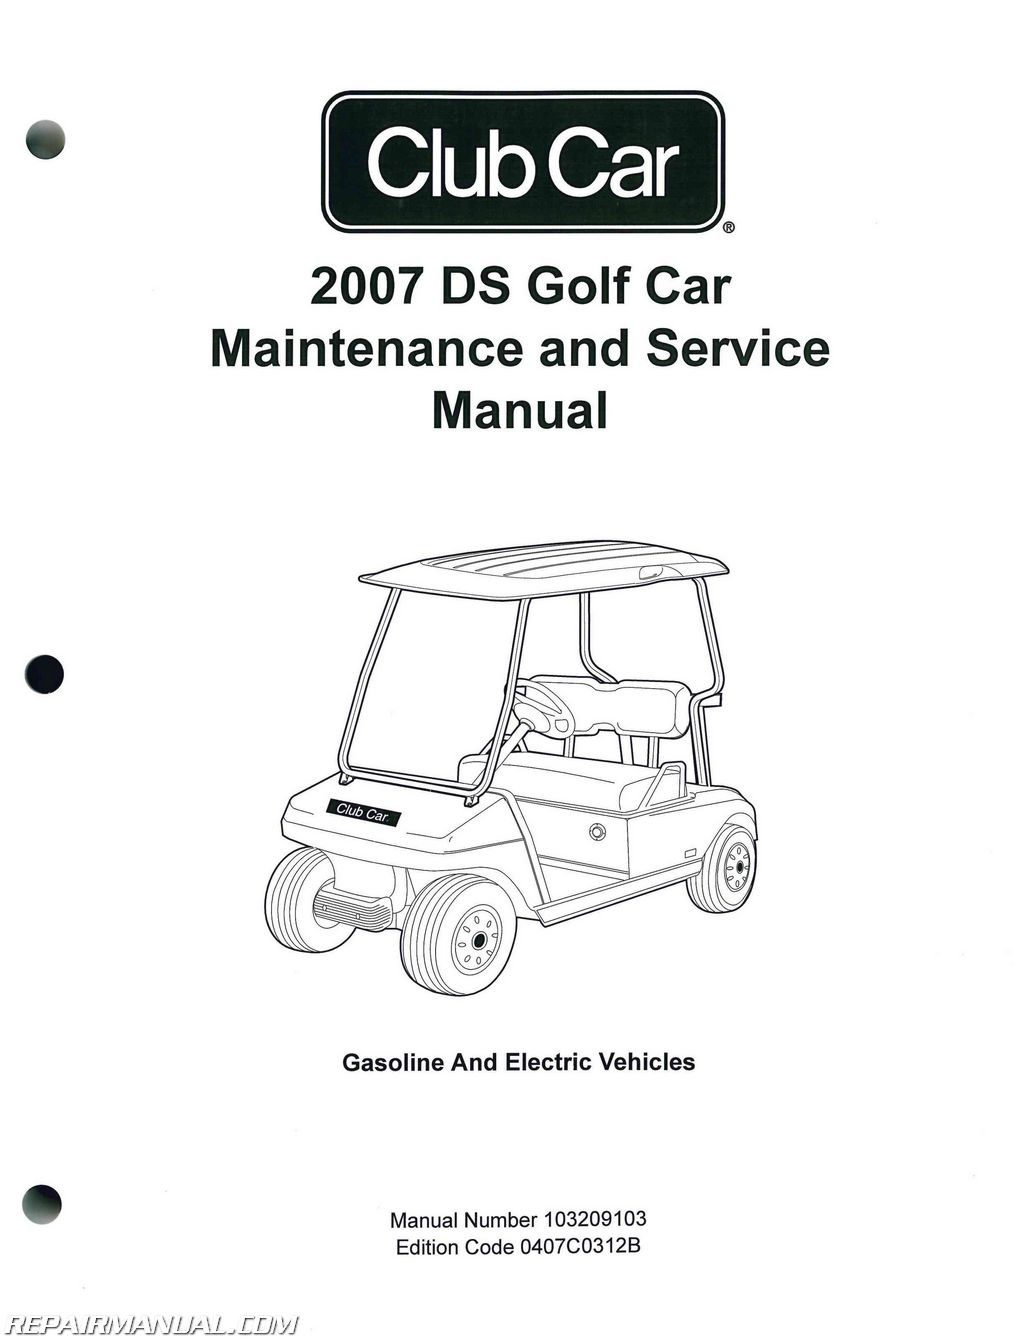 2007 Club Car DS Golf Car Gas And Electric Golf Cart Service ...